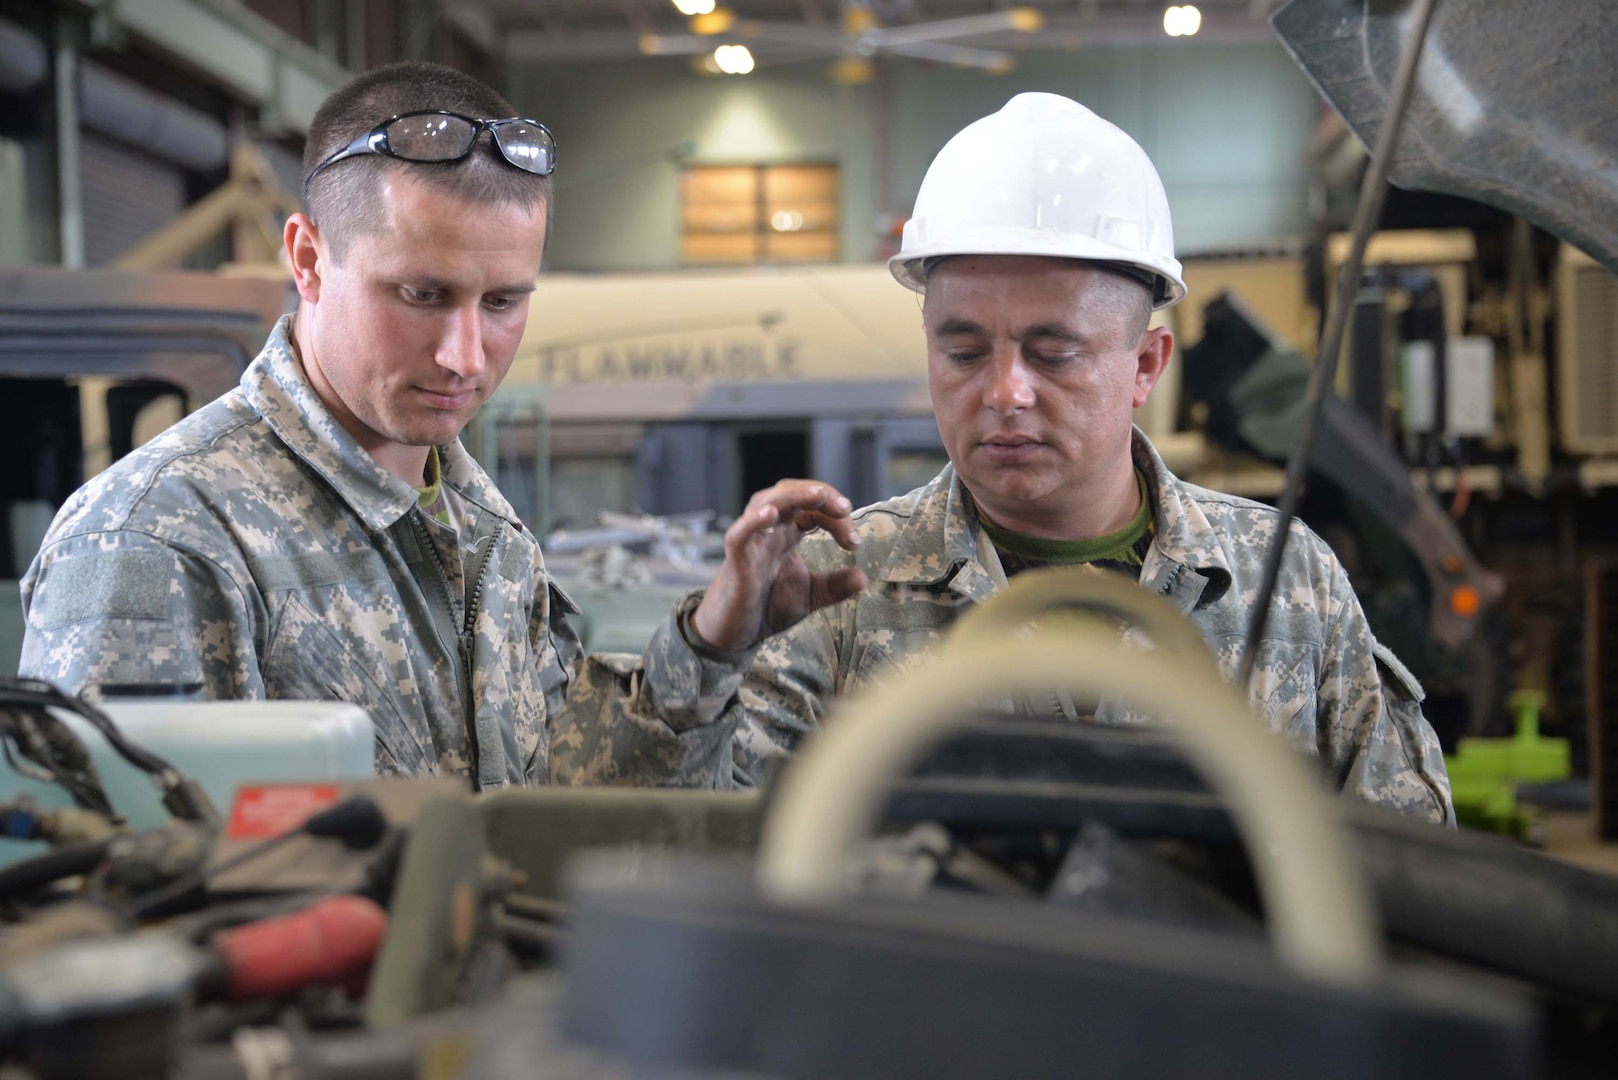 Warrant Officer Ghenadie Varzari and SGT Andrei Dogari, Mechanics with the Moldovan Defense Forces, work together to troubleshoot the issue in a Humvee engine at the North Carolina National Guard Combine Support Maintenance Shop in Raleigh, North Carolina, May 17, 2018. The North Carolina National Guard and the Moldovan Defense Forces have been hosting bi-lateral engagements through the State Partnership Program that has allowed Soldier growth and development for both countries.